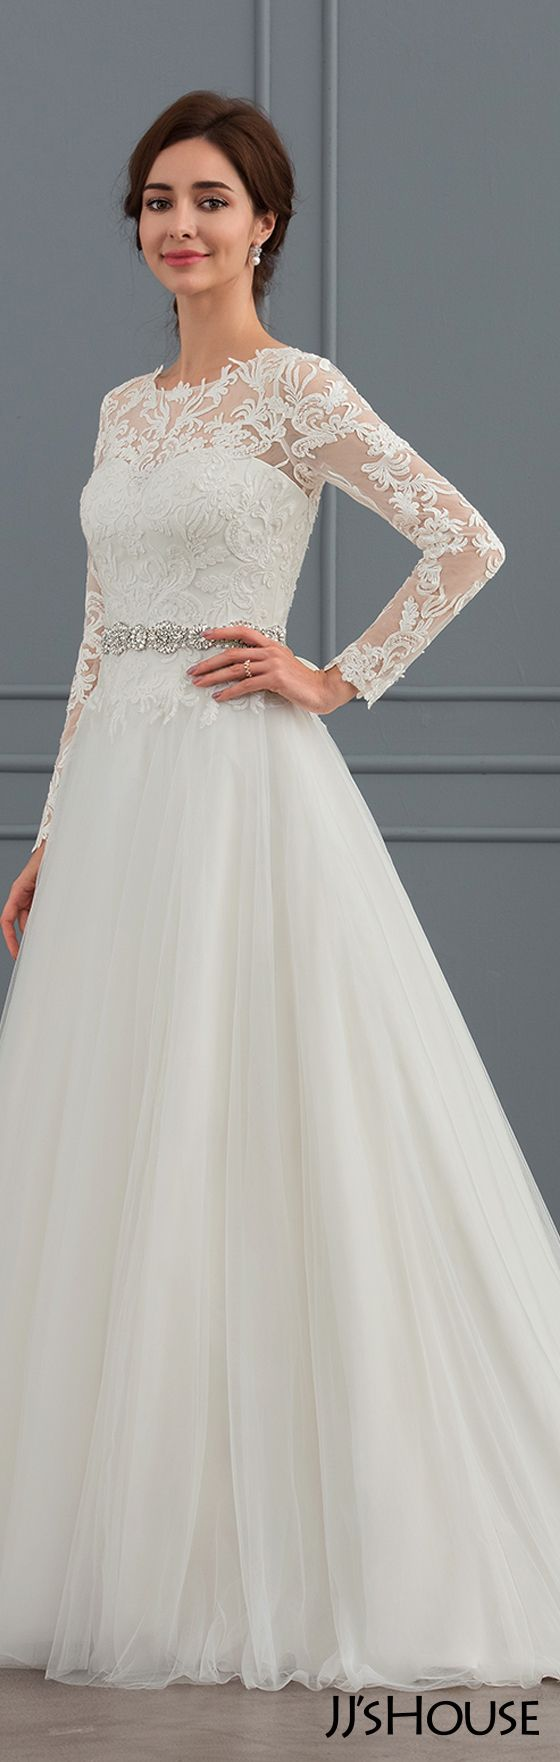 Ball-Gown Scoop Neck Sweep Train Tulle Wedding Dress (002127265 ...